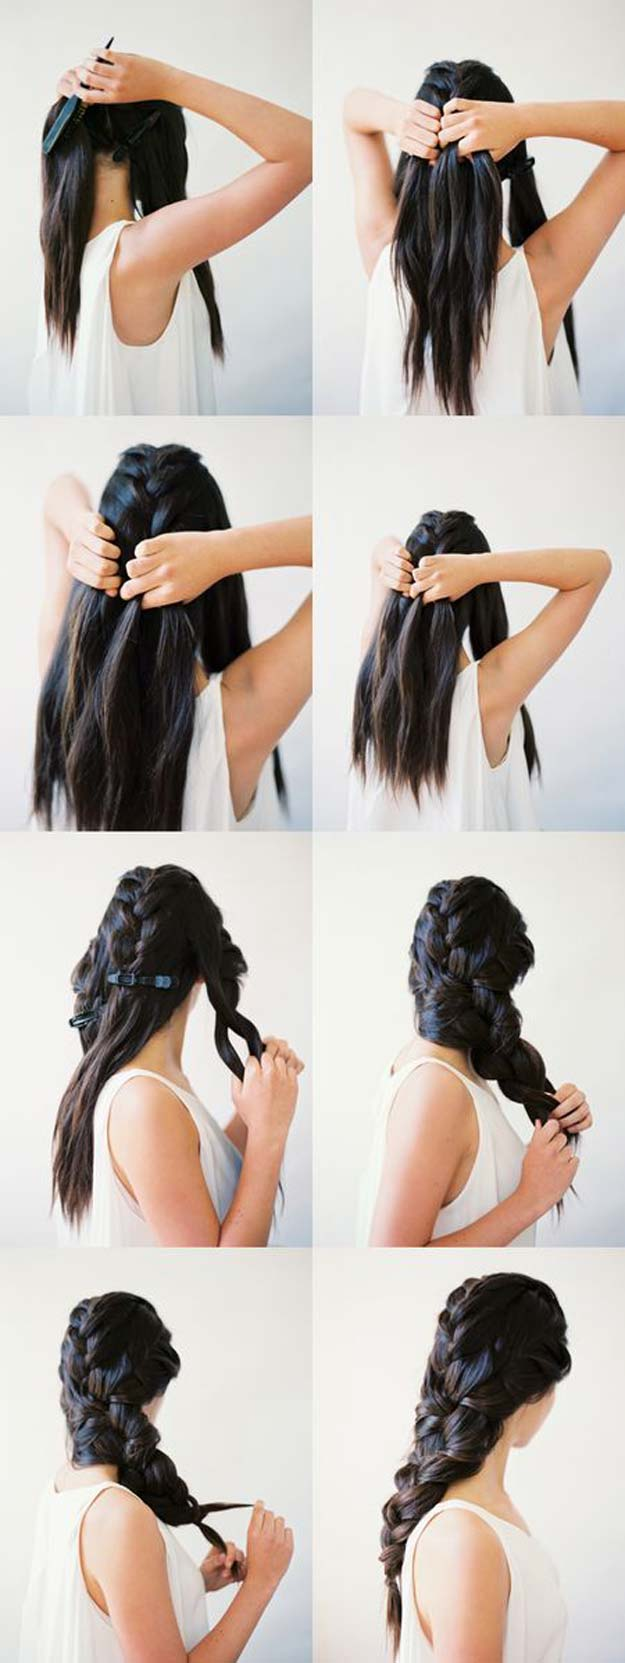 Cool And Easy DIY Hairstyles   Stylish Braids   Quick And Easy Ideas For  Back To